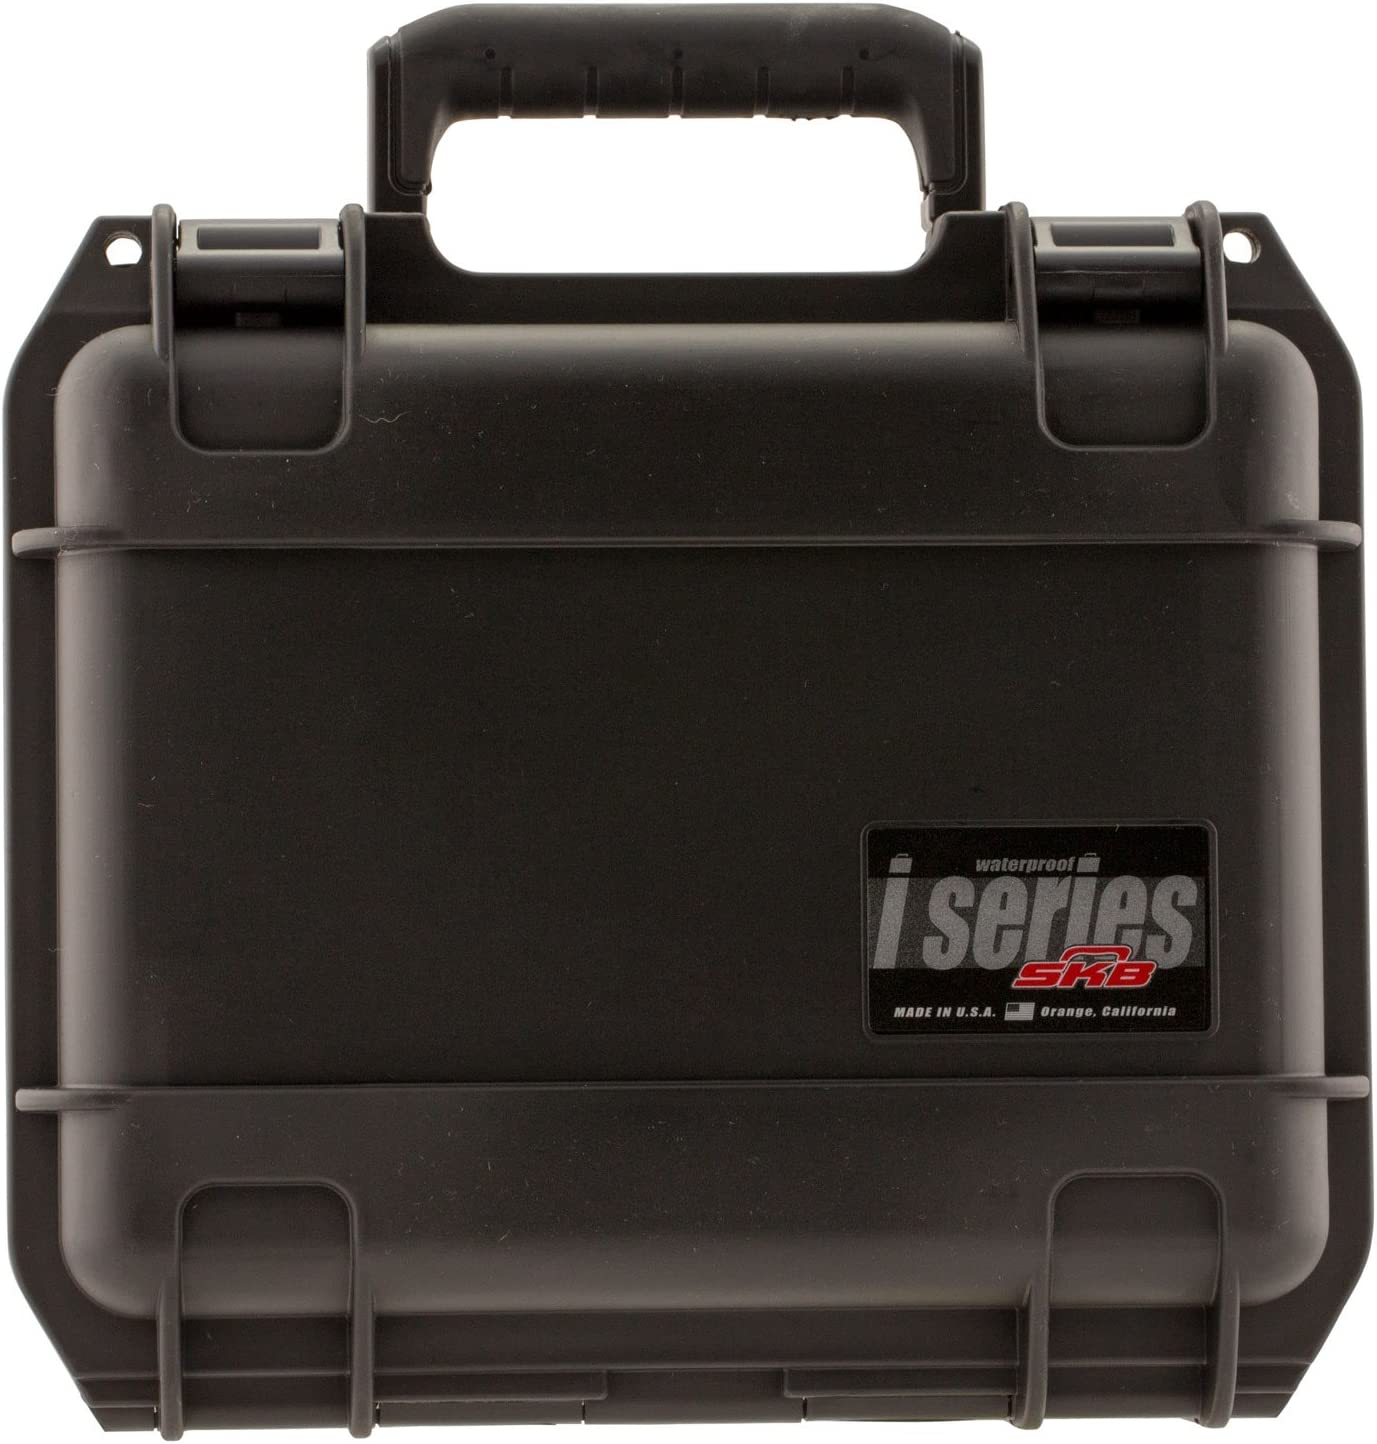 B001B94ISO SKB Injection Molded Layered Foam Equipment Case 71Jav9g1gWL